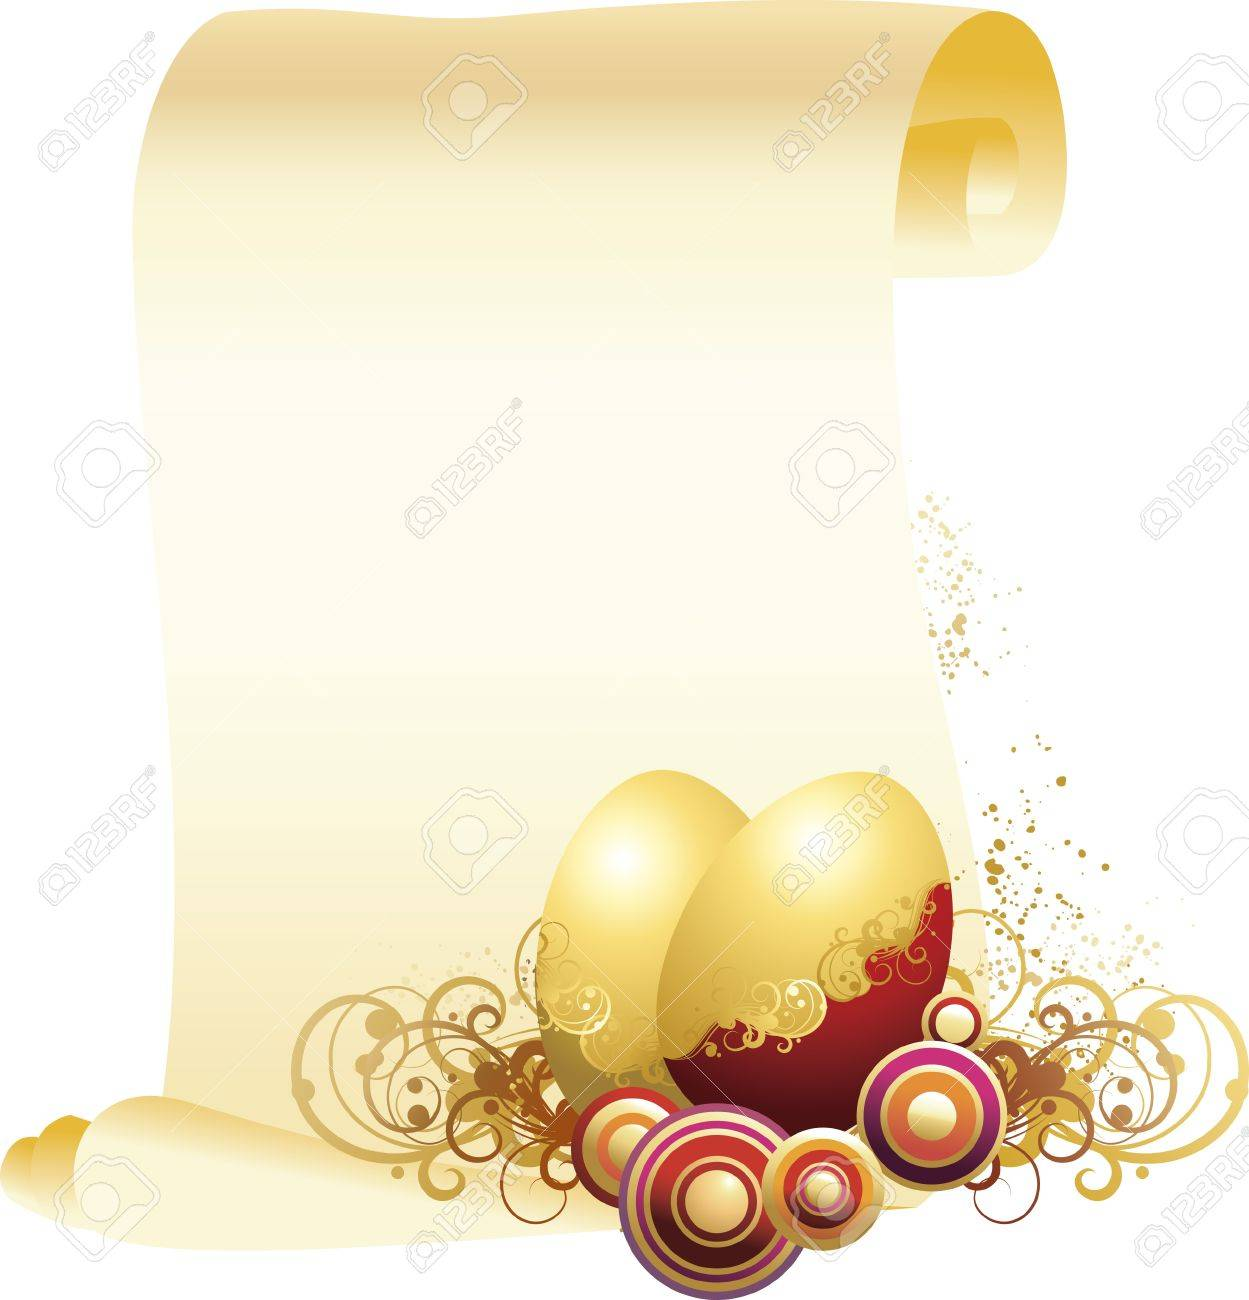 vector illustration contains the image of Easter eggs and a congratulatory letter Stock Vector - 12878689